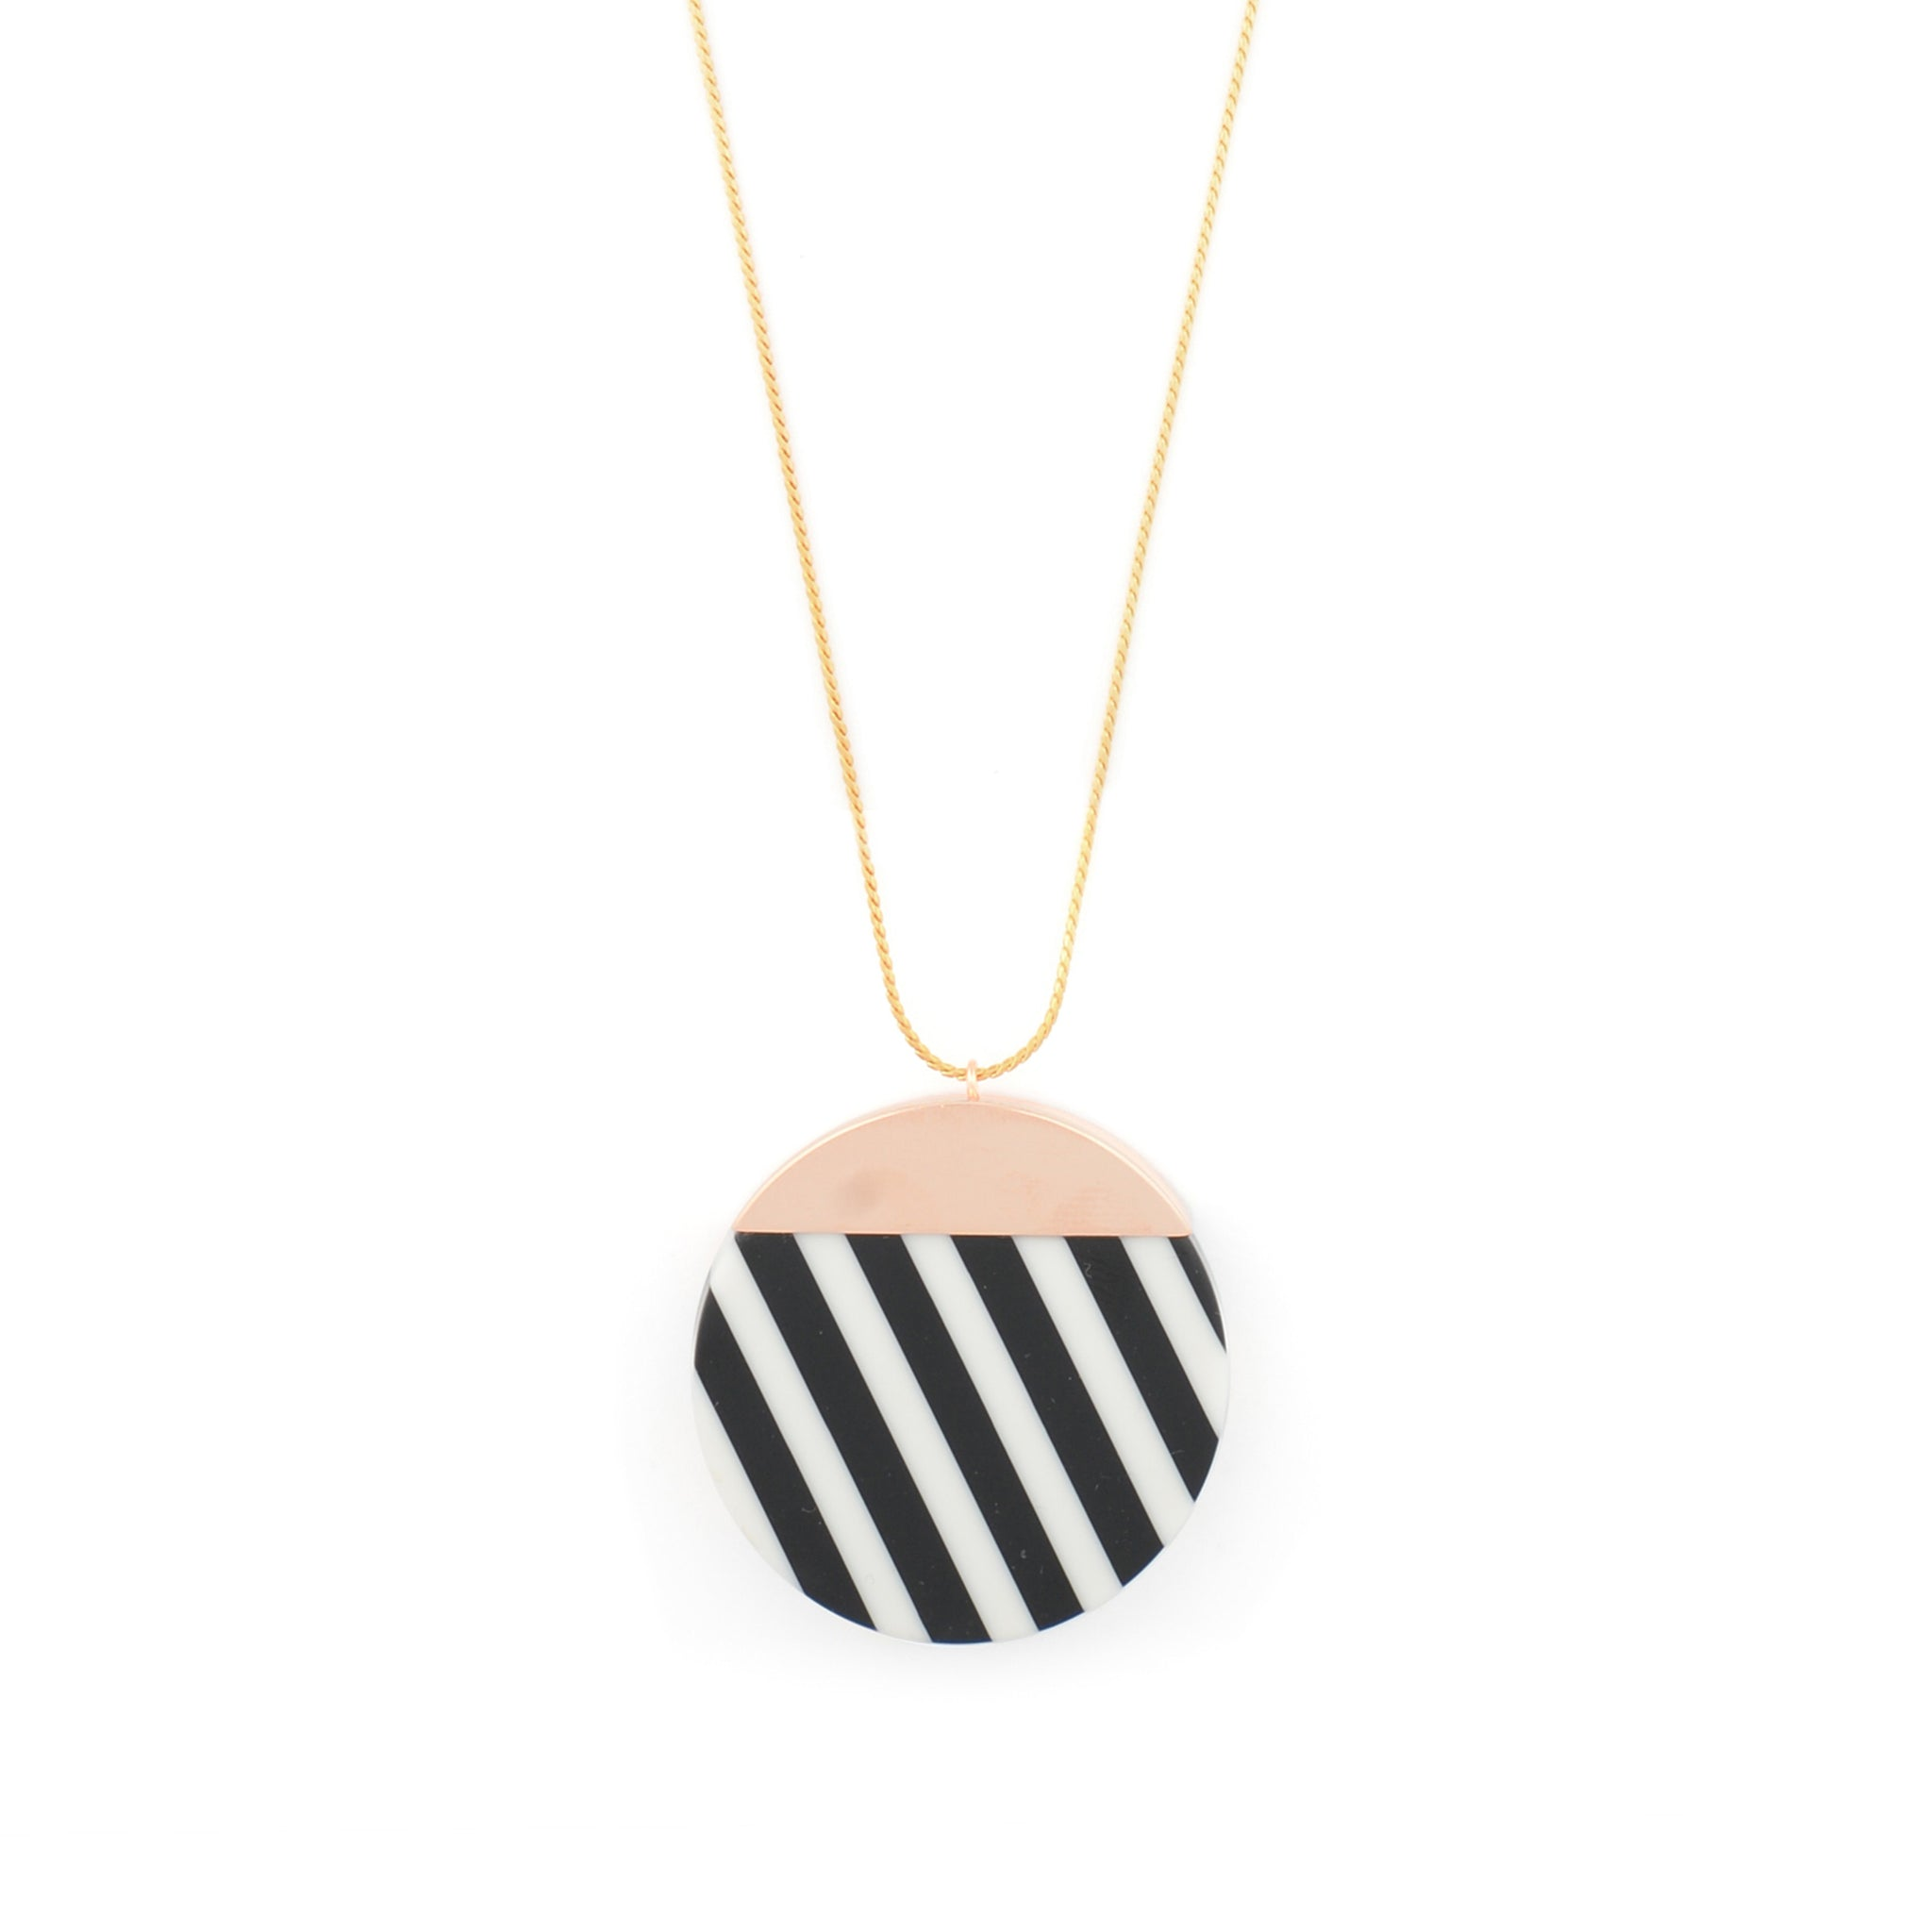 Long Necklace with black and white striped Pendant